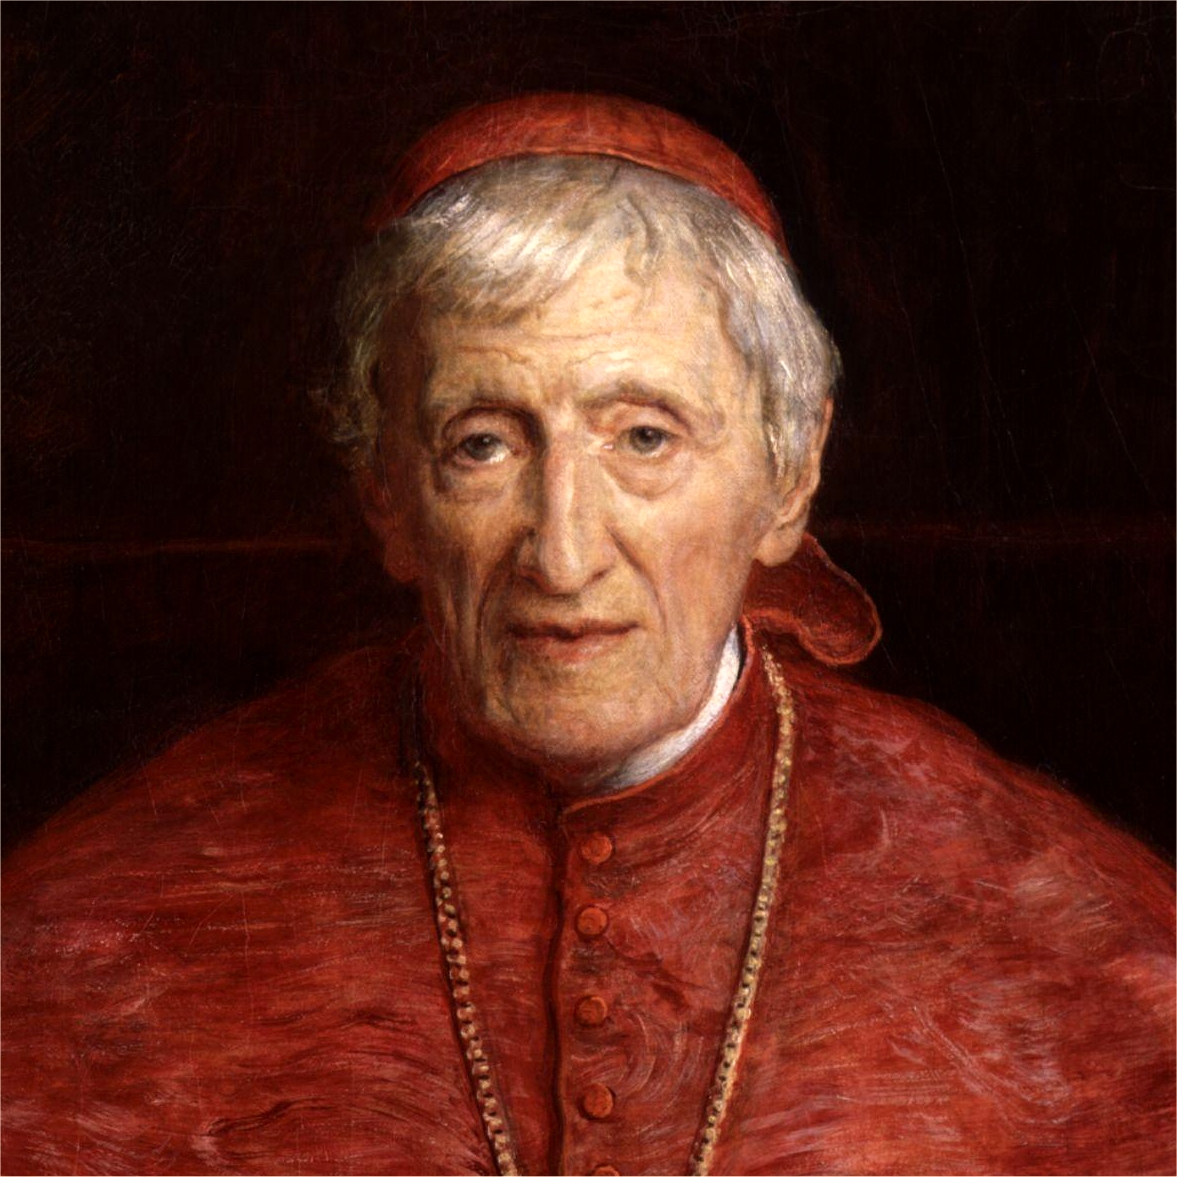 john newman essay B lessed cardinal buy college transcript paper john henry newman (1801-1890) was an anglican convert to roman catholicism quotations by john henry newman, british.